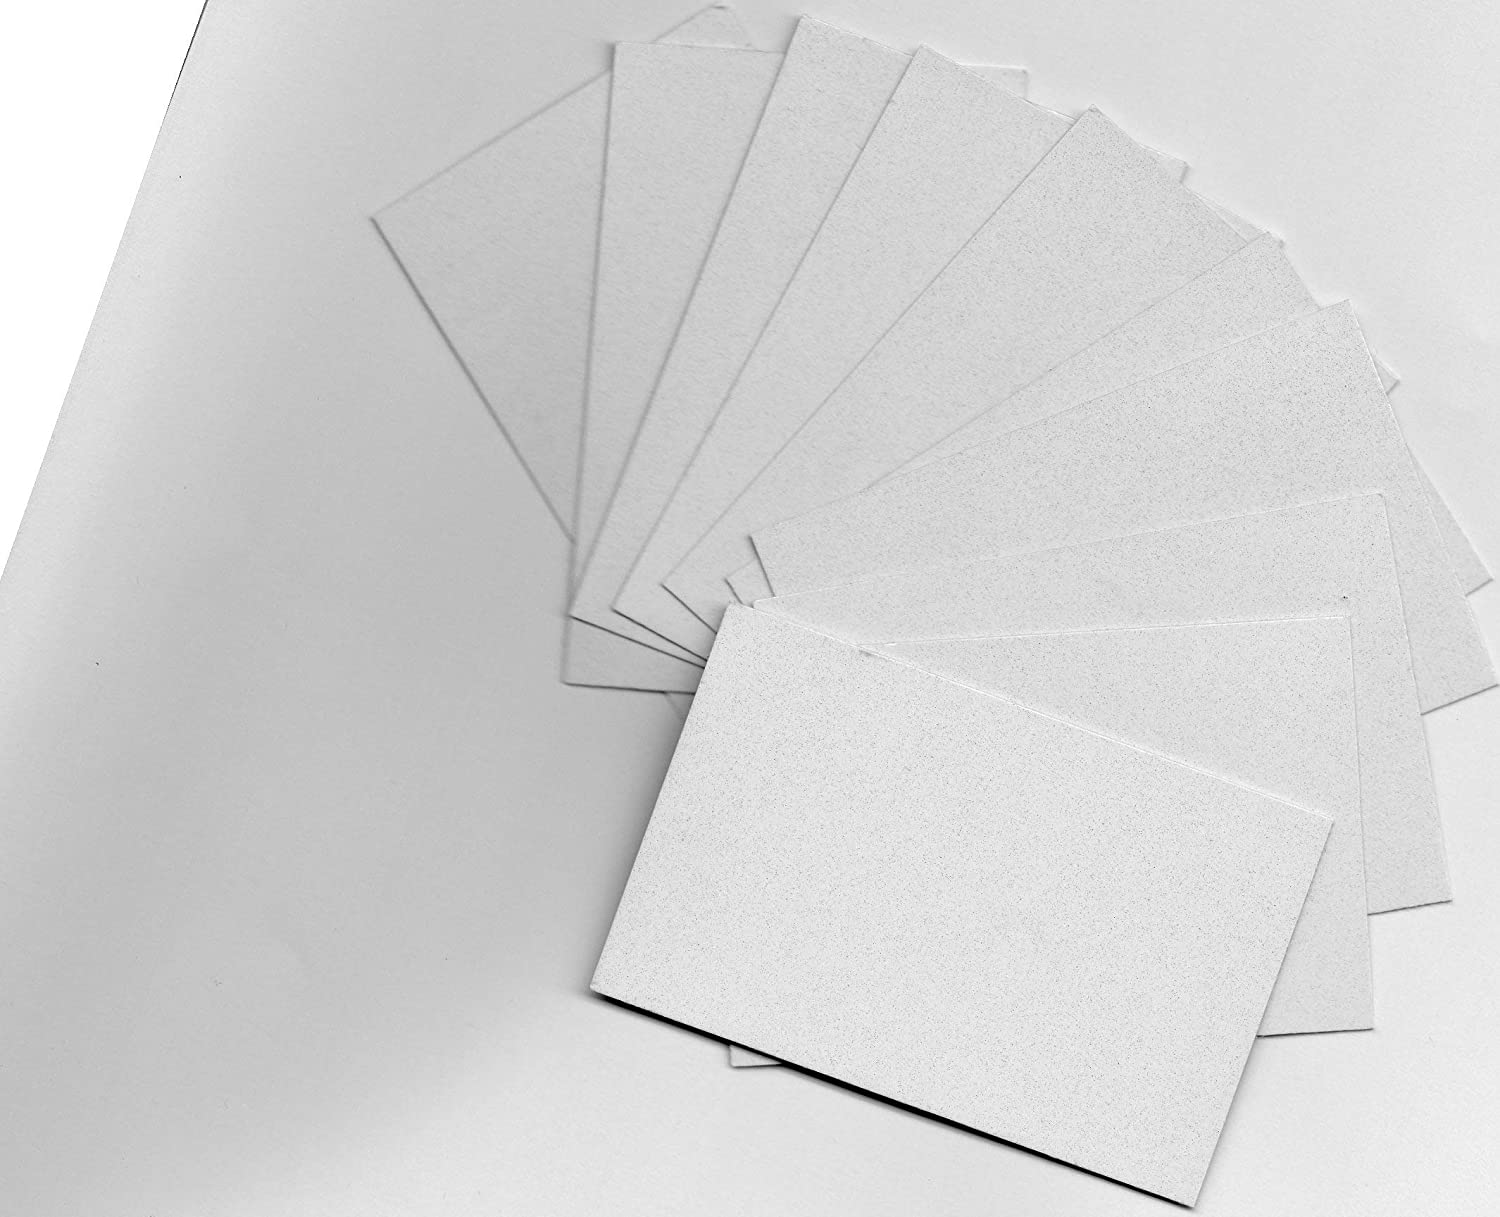 10 White Dye Sublimation Blank Aluminum Board Heat Transfer Steel Sheet Engraved 8 X 5 cm 3x2